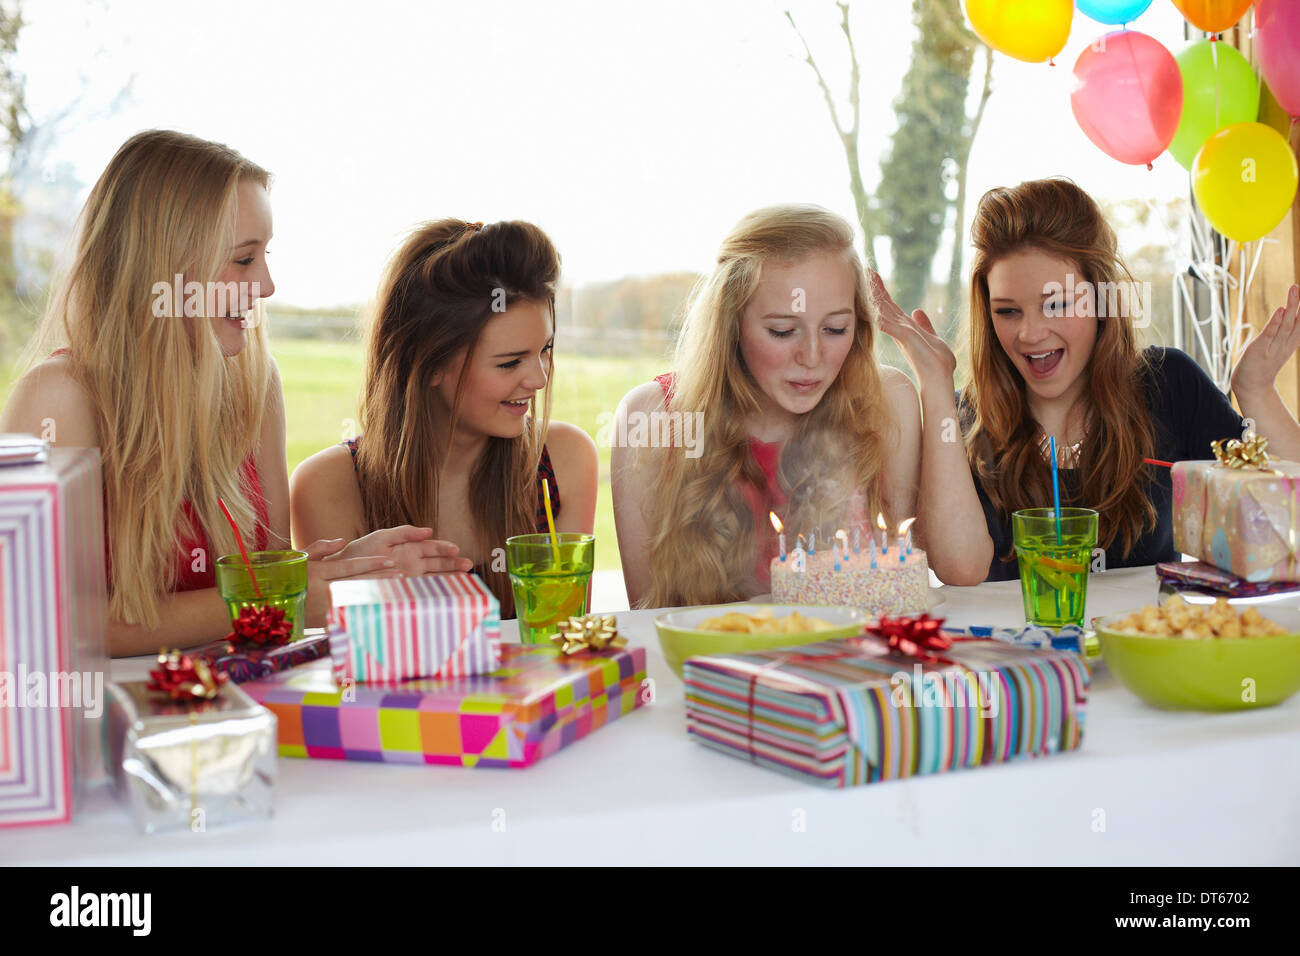 Teenage girl blowing out birthday candles with friends - Stock Image